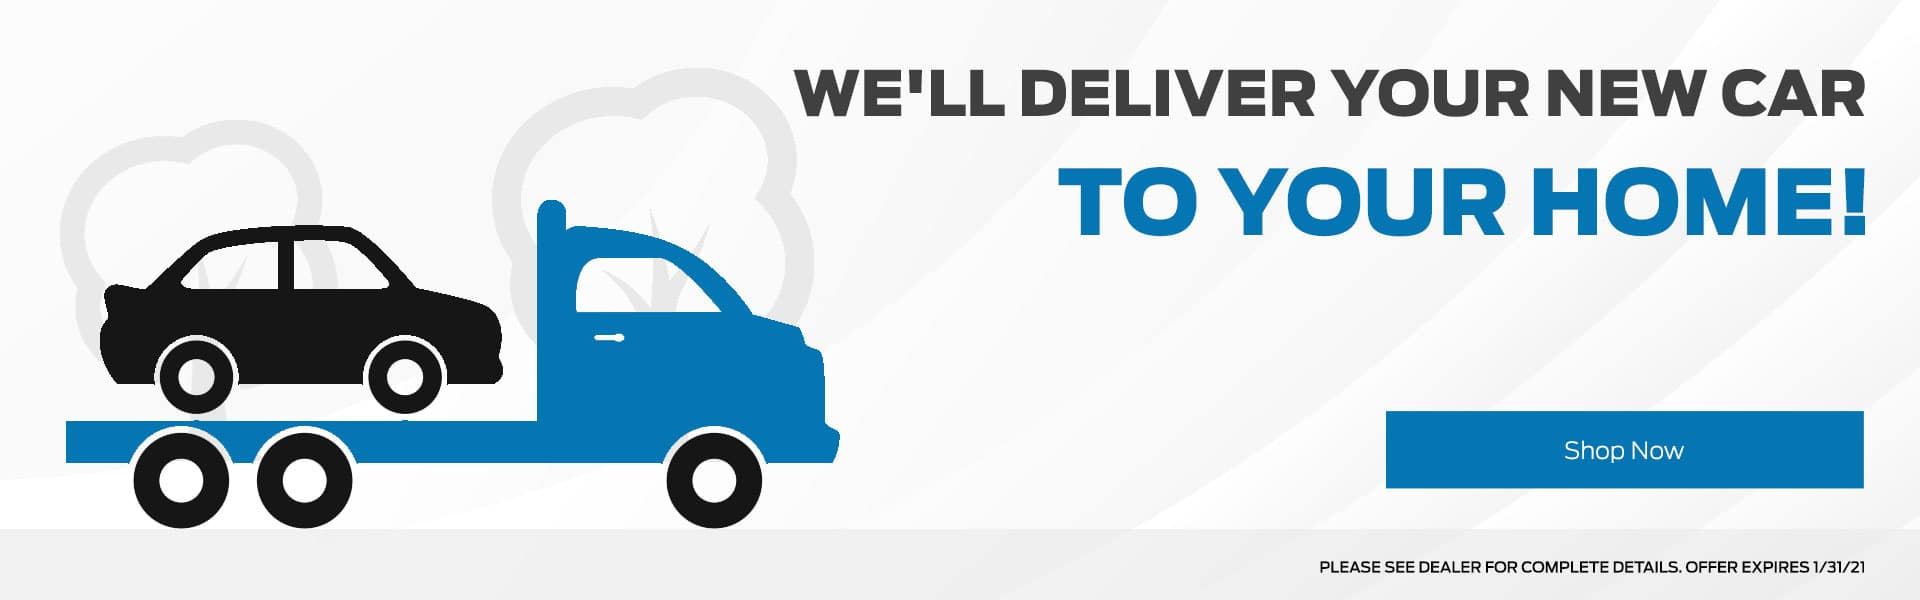 We'll deliver your New Car